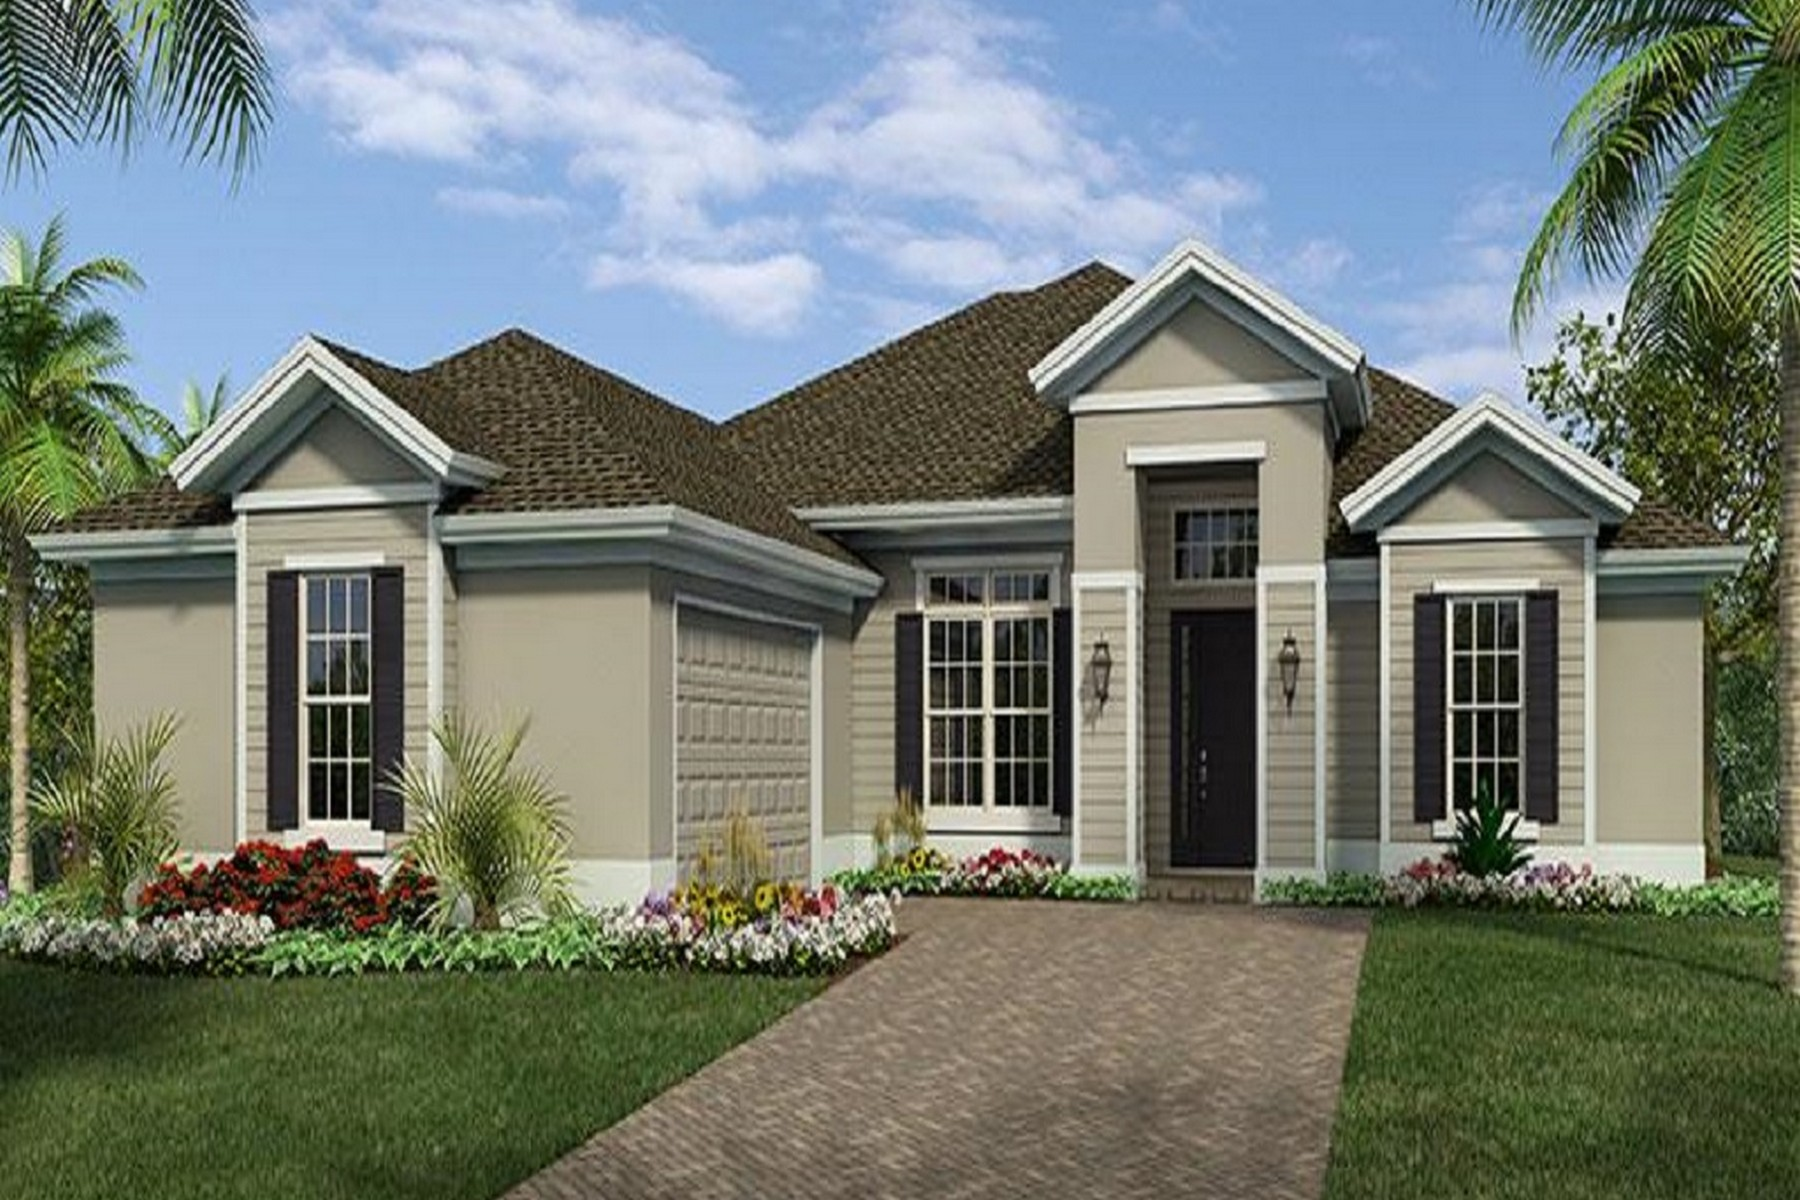 Maison unifamiliale pour l Vente à Ready February 2017 6963 Hartney Way Port St. Lucie, Florida, 34983 États-Unis